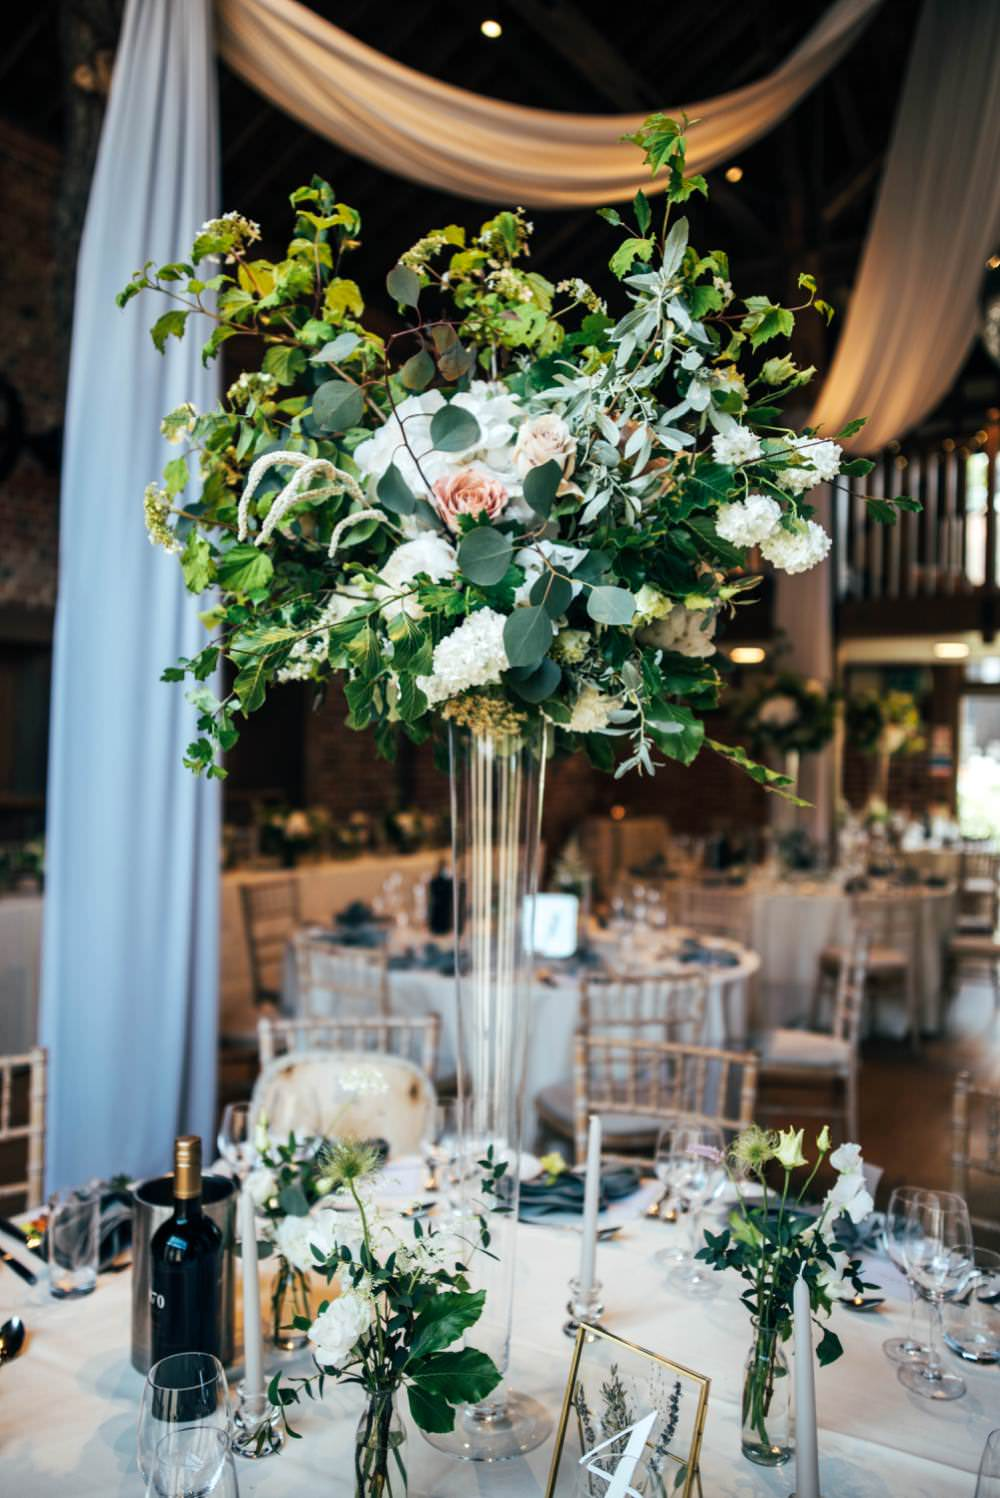 Tall Centrepiece Table Decor Flowers Greenery Foliage Warm Welcoming Wedding Three Flowers Photography